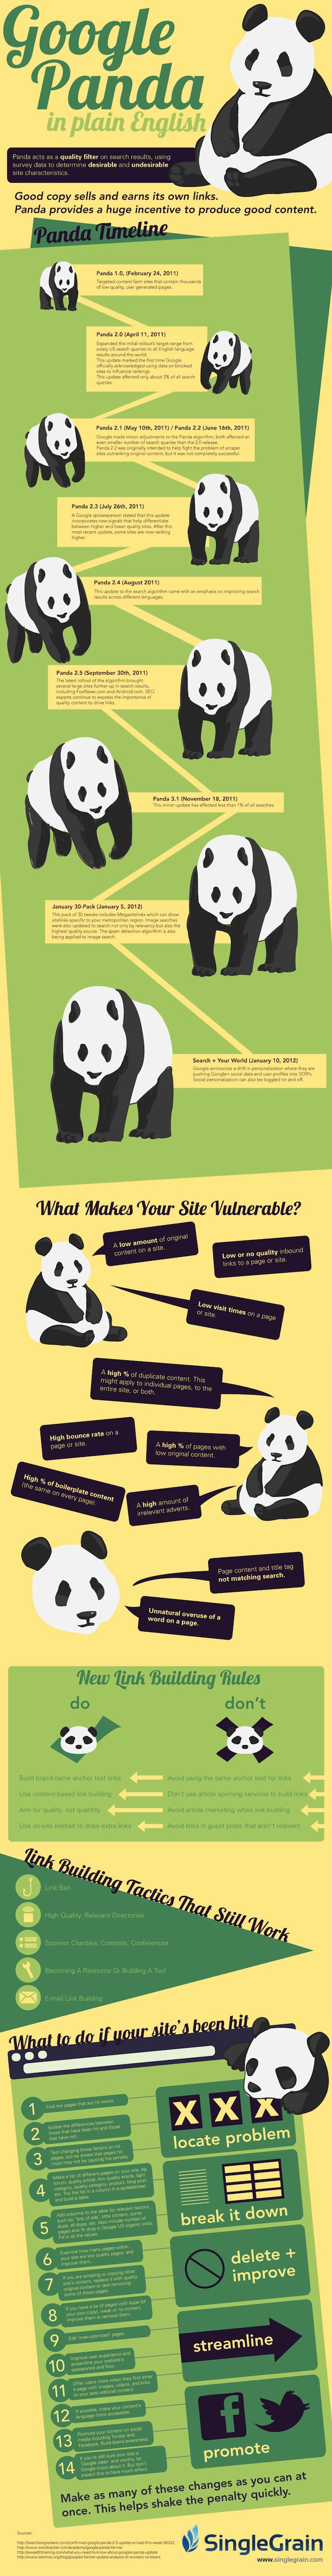 Google Panda Explained Infographic